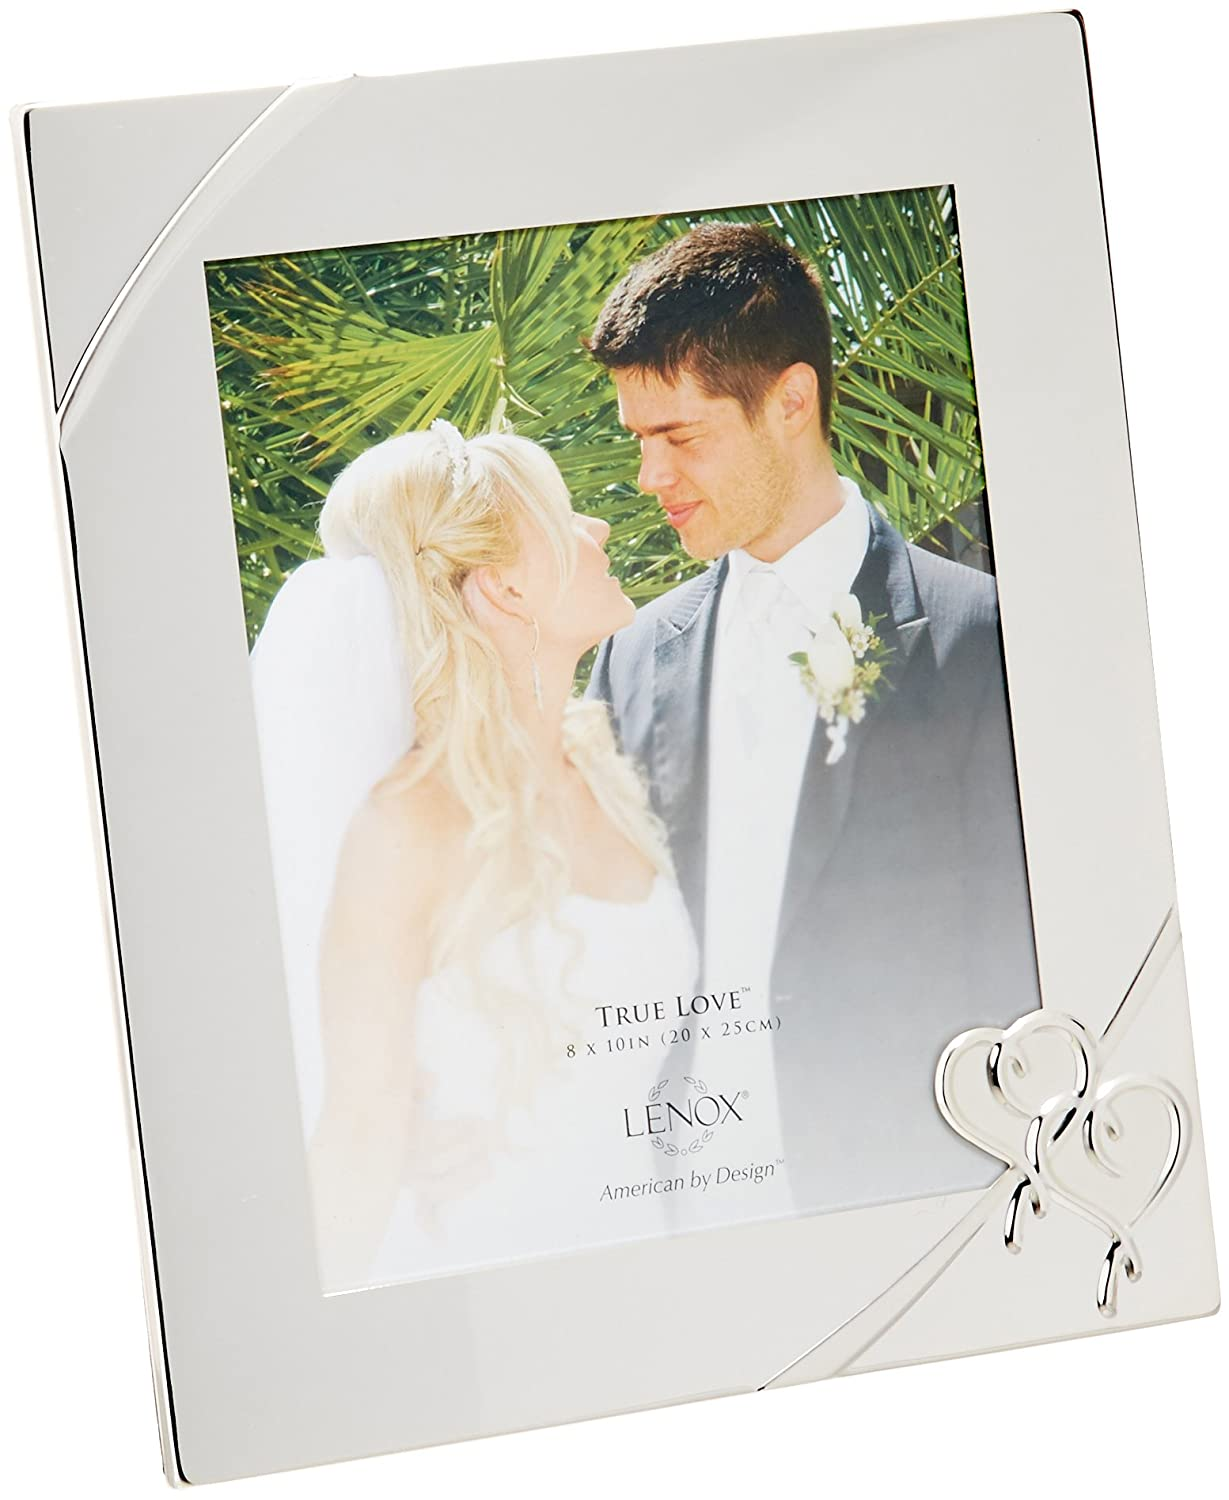 Amazon.com - Lenox True Love 8x10 Picture Frame - Luxury Frames